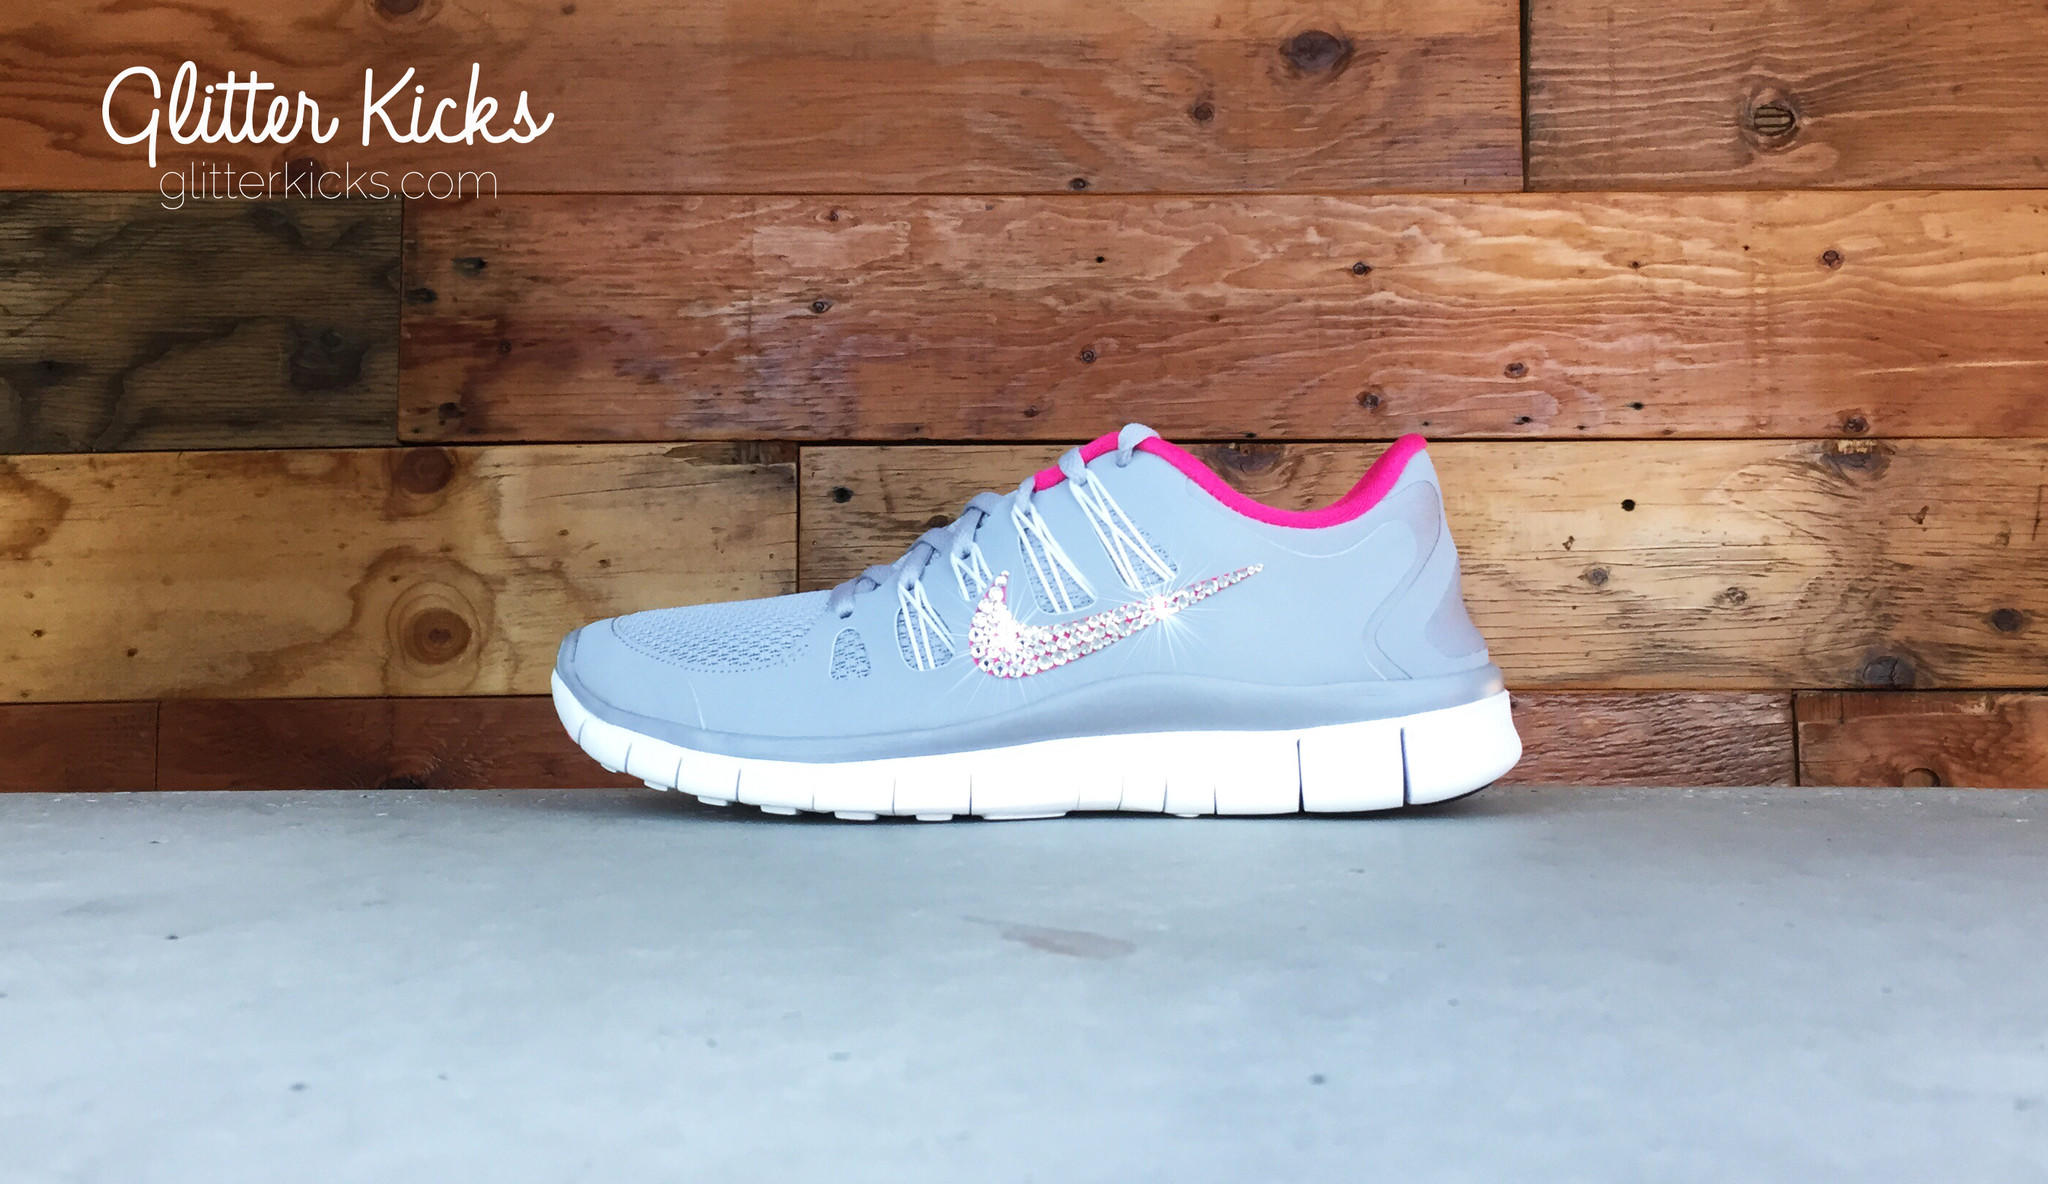 Women s Nike Free 5.0+ Running Shoes By from Glitter Kicks 8cbedef3be